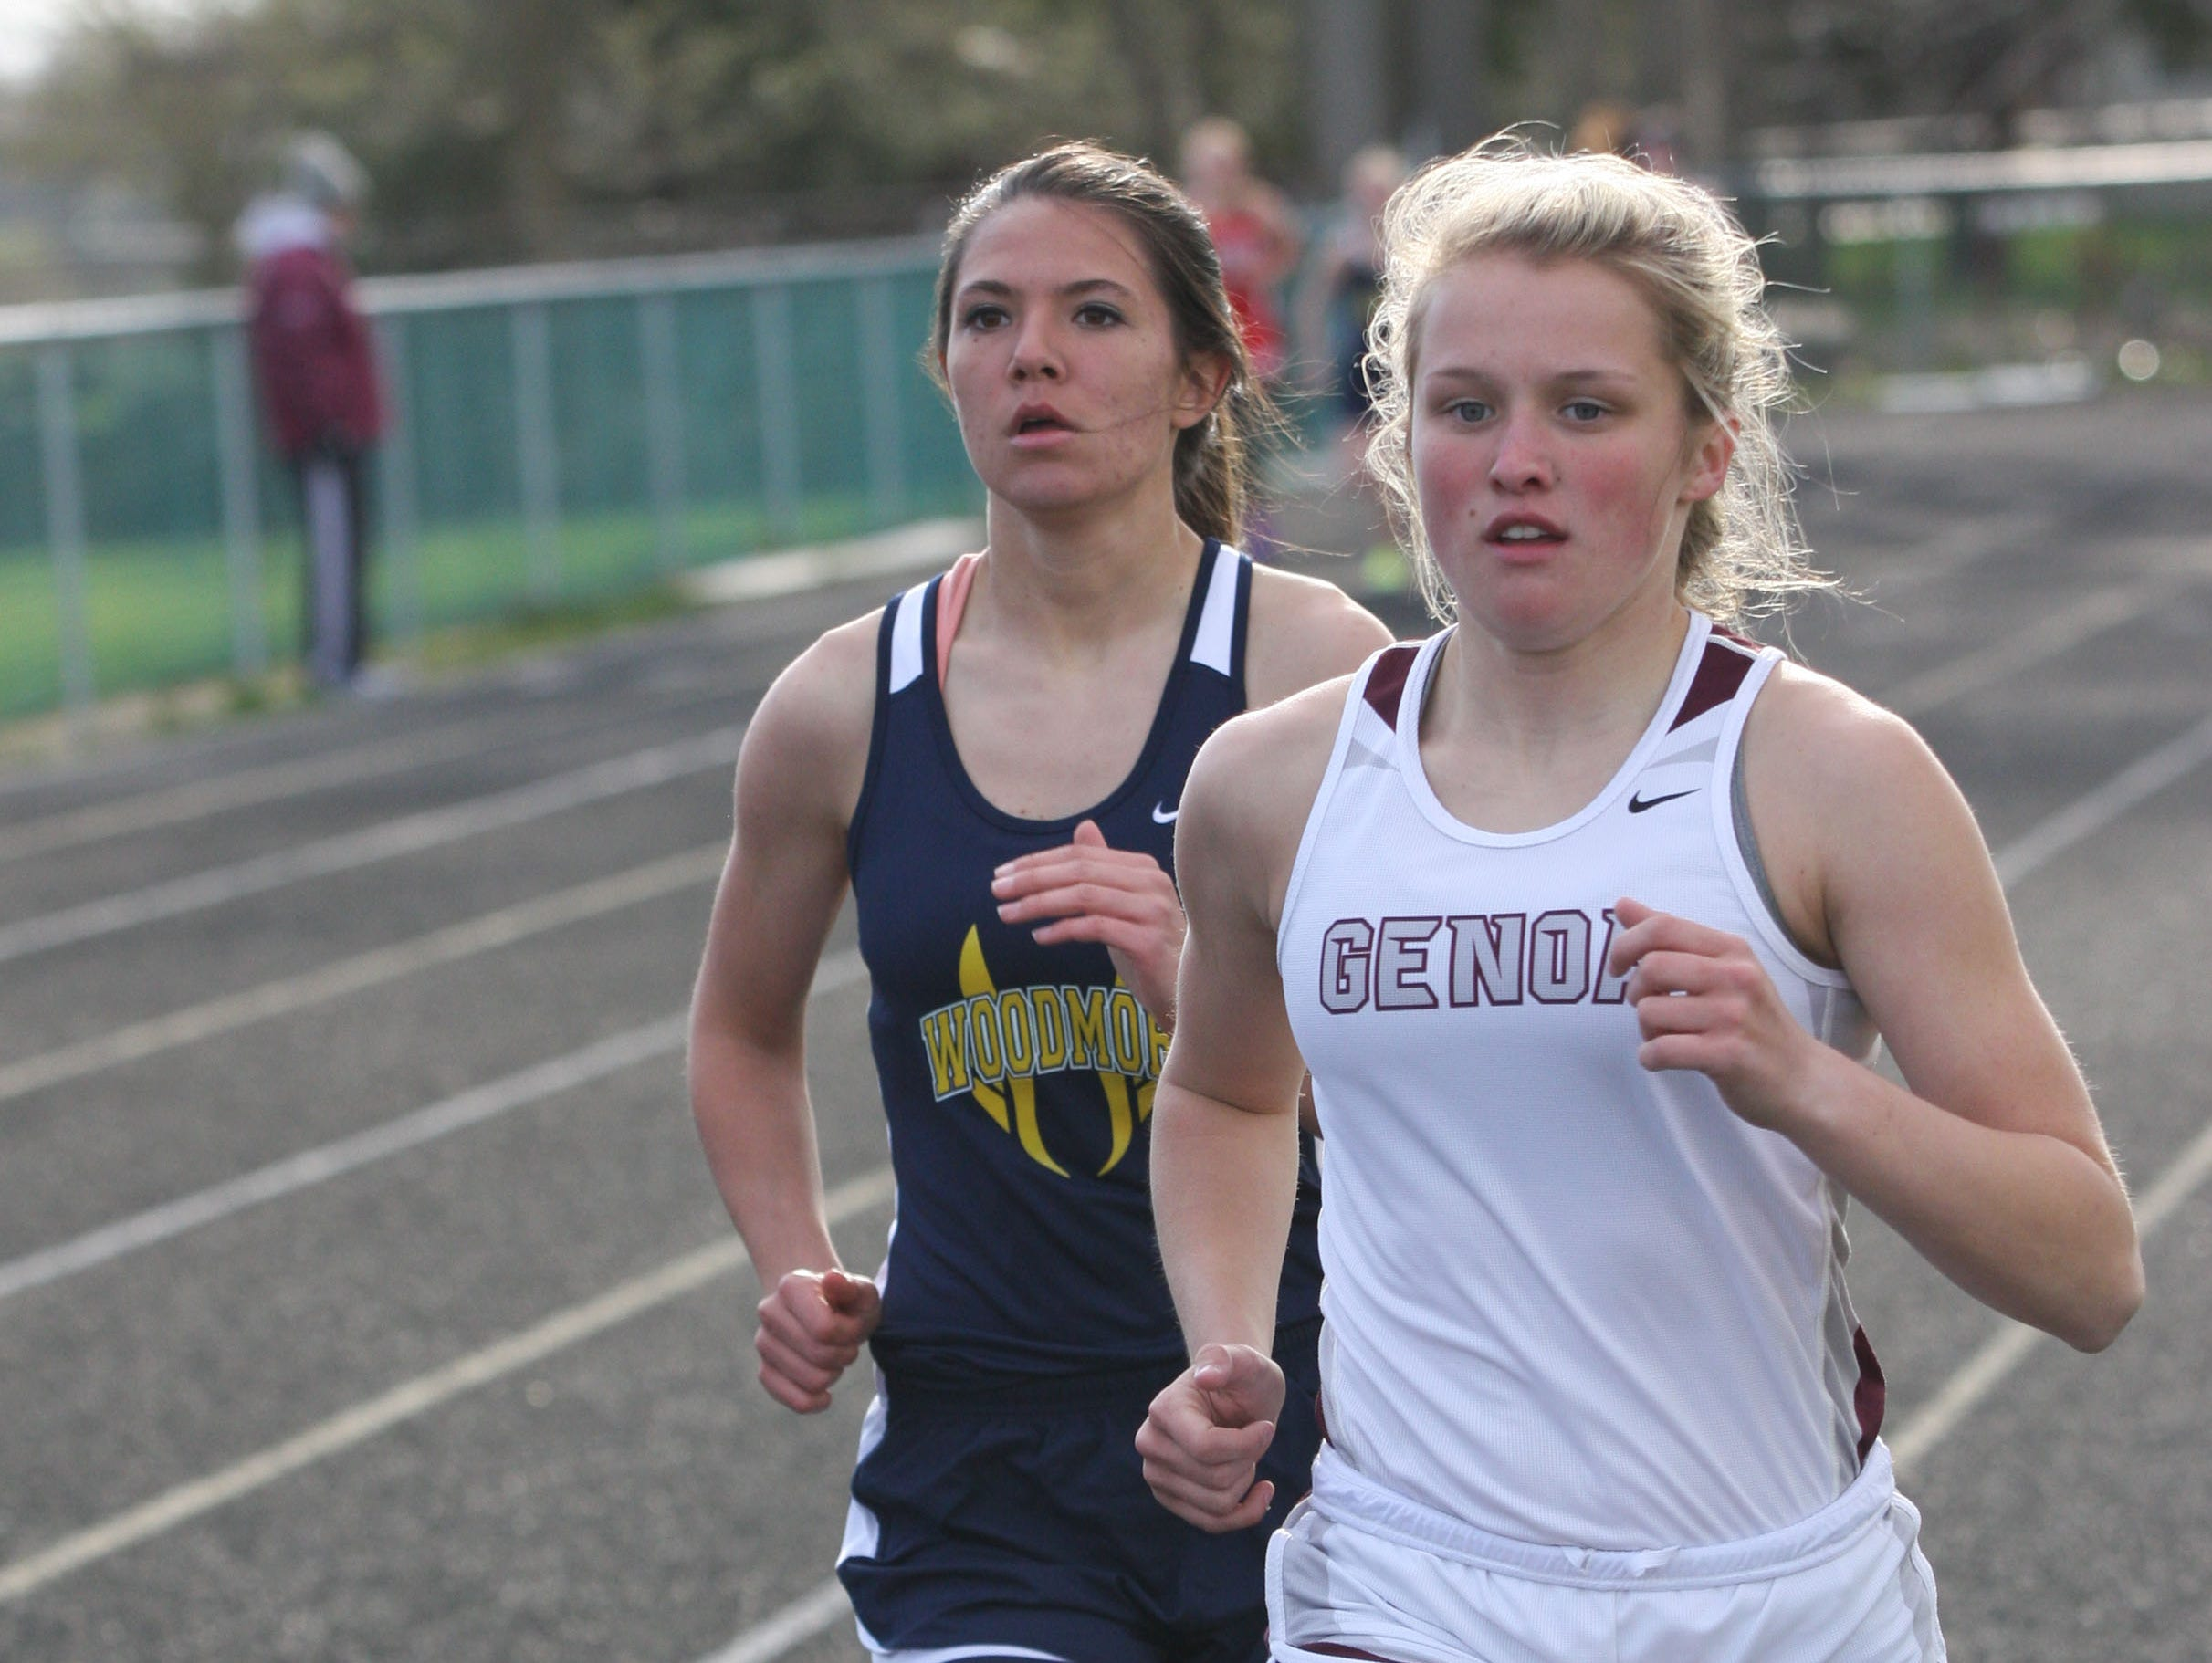 Genoa's Carly Gose and Woodmore's Jessie Wegert battle for the lead in the 800m run.